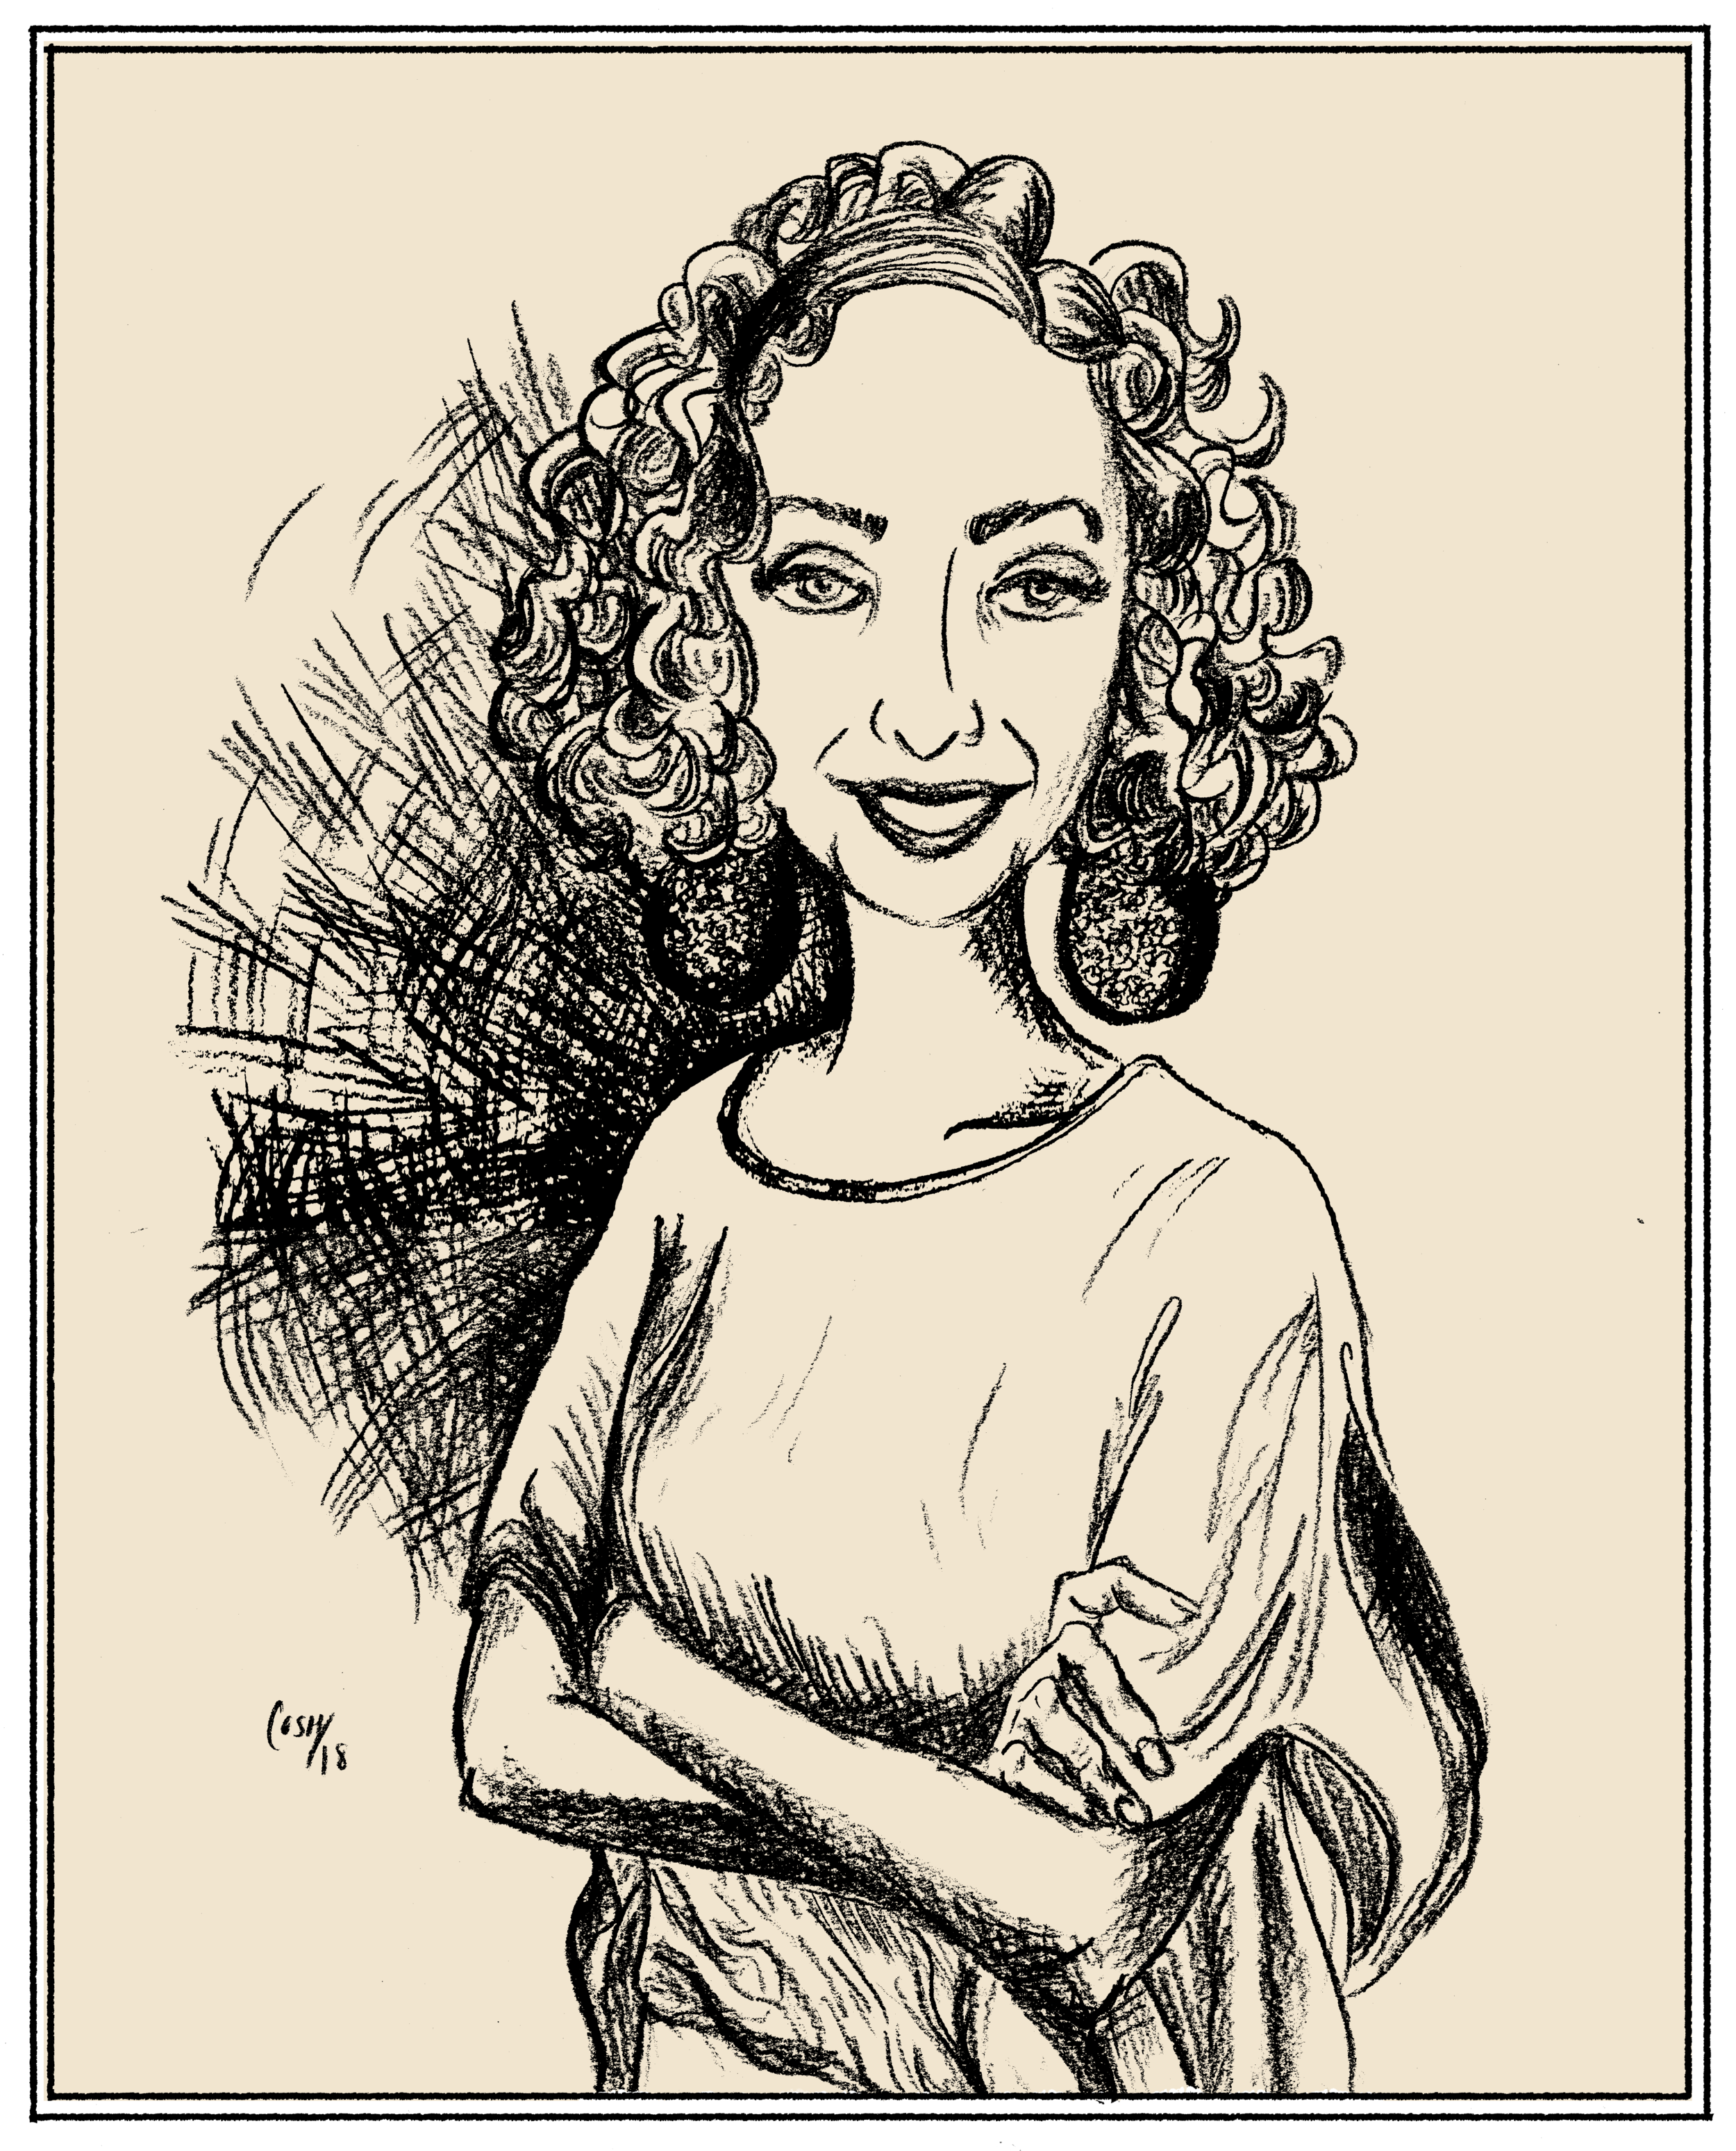 Sofia Samatar, Pocket Interview No. 7 - Sofia Samatar lives in Virginia. Her 2014 debut novel, A Stranger in Olondria, won the World Fantasy and British Fantasy awards for Best Novel. Her most recent book, published in February of this year, is Monster Portraits, an autobiography threaded with accounts of fantastic creatures illustrated by her brother.Last year, Sofia spoke with us about, among other things, jazz, identity, belonging, feeling lost in life and in stories, and how we might use language to build, and remember, home. Also, Enid Blyton.(click here to listen to an audio version of this interview)1-2-3-4-5 -Questionnaire